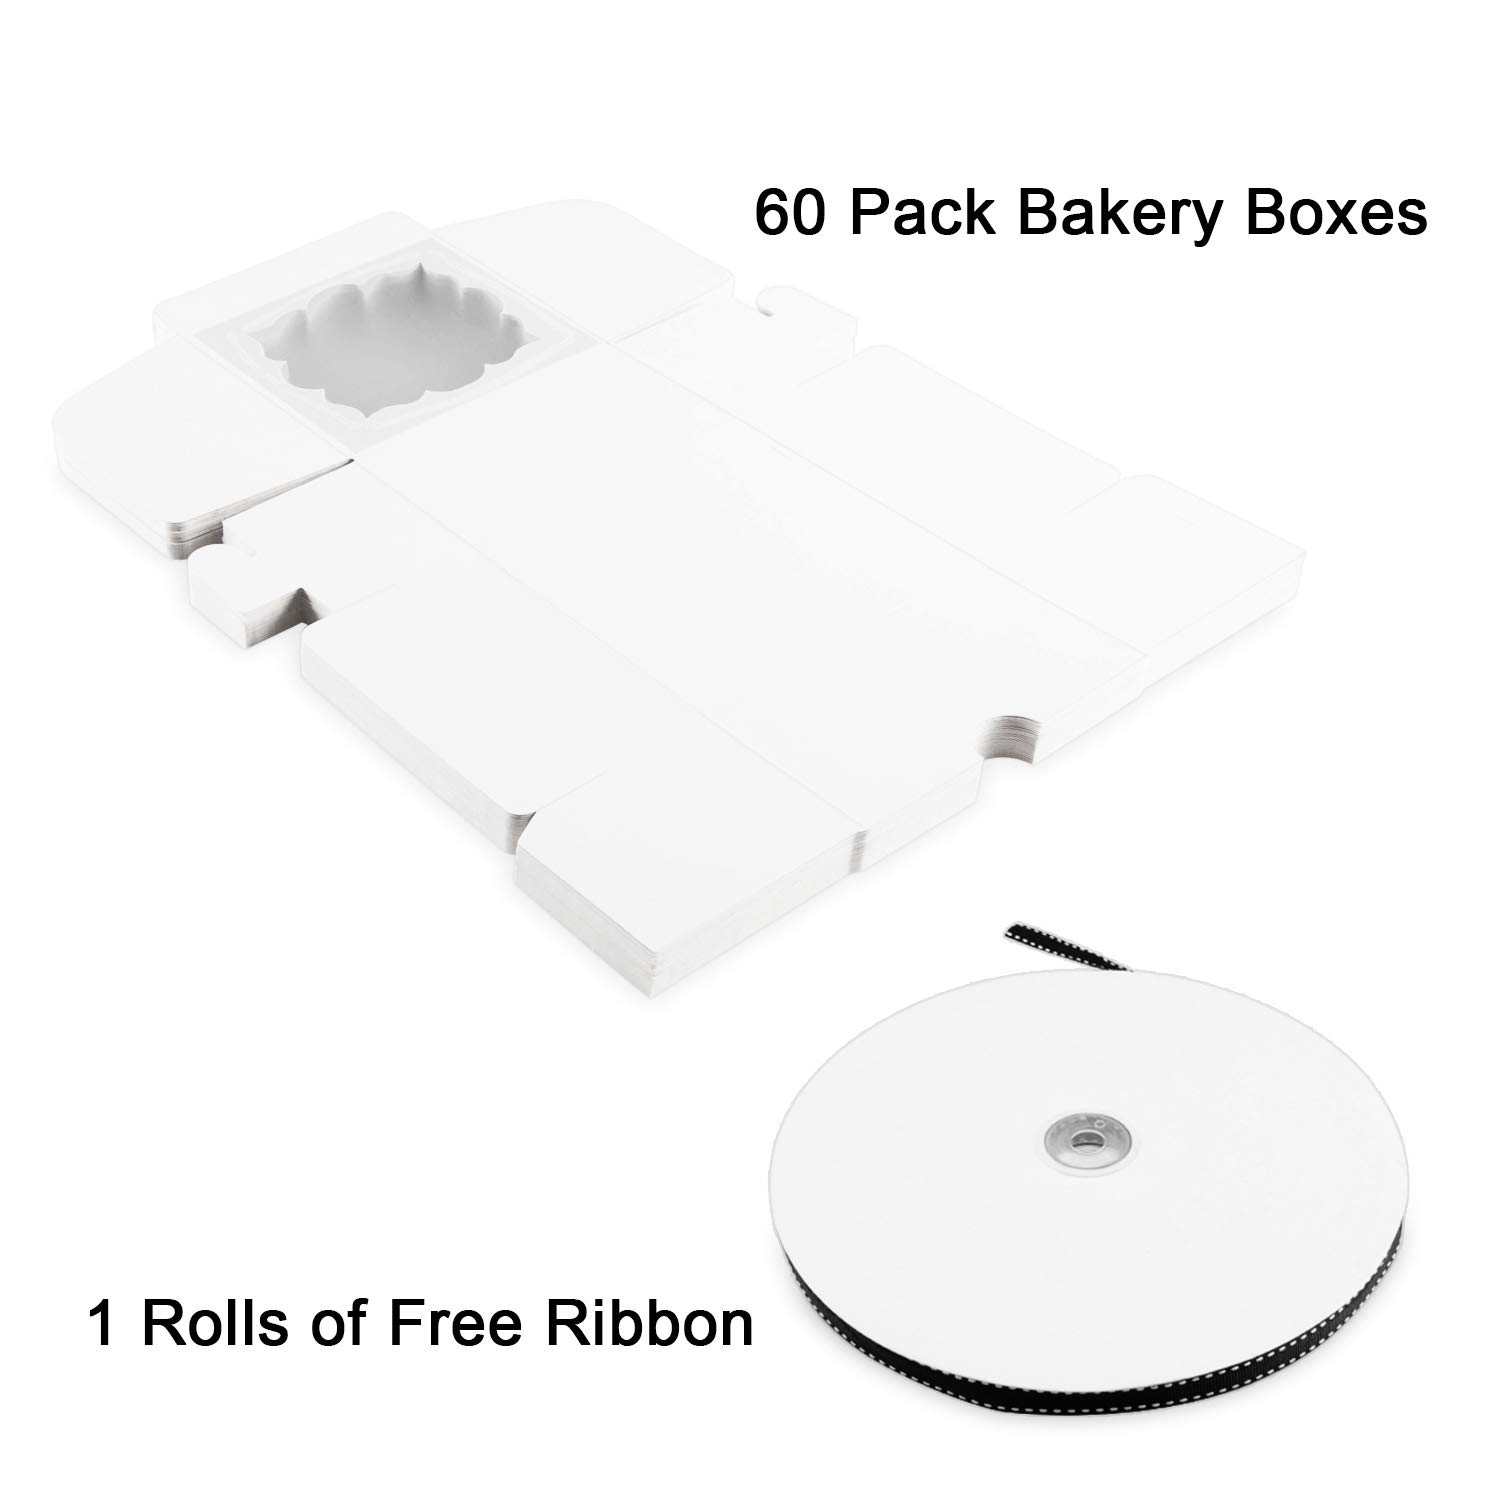 Thalia 60 Pack 4x4x2.5 inches White Bakery Boxes with Window Pastry Box Cake Boxes for Small Pastries Pie Cupcakes Cookies